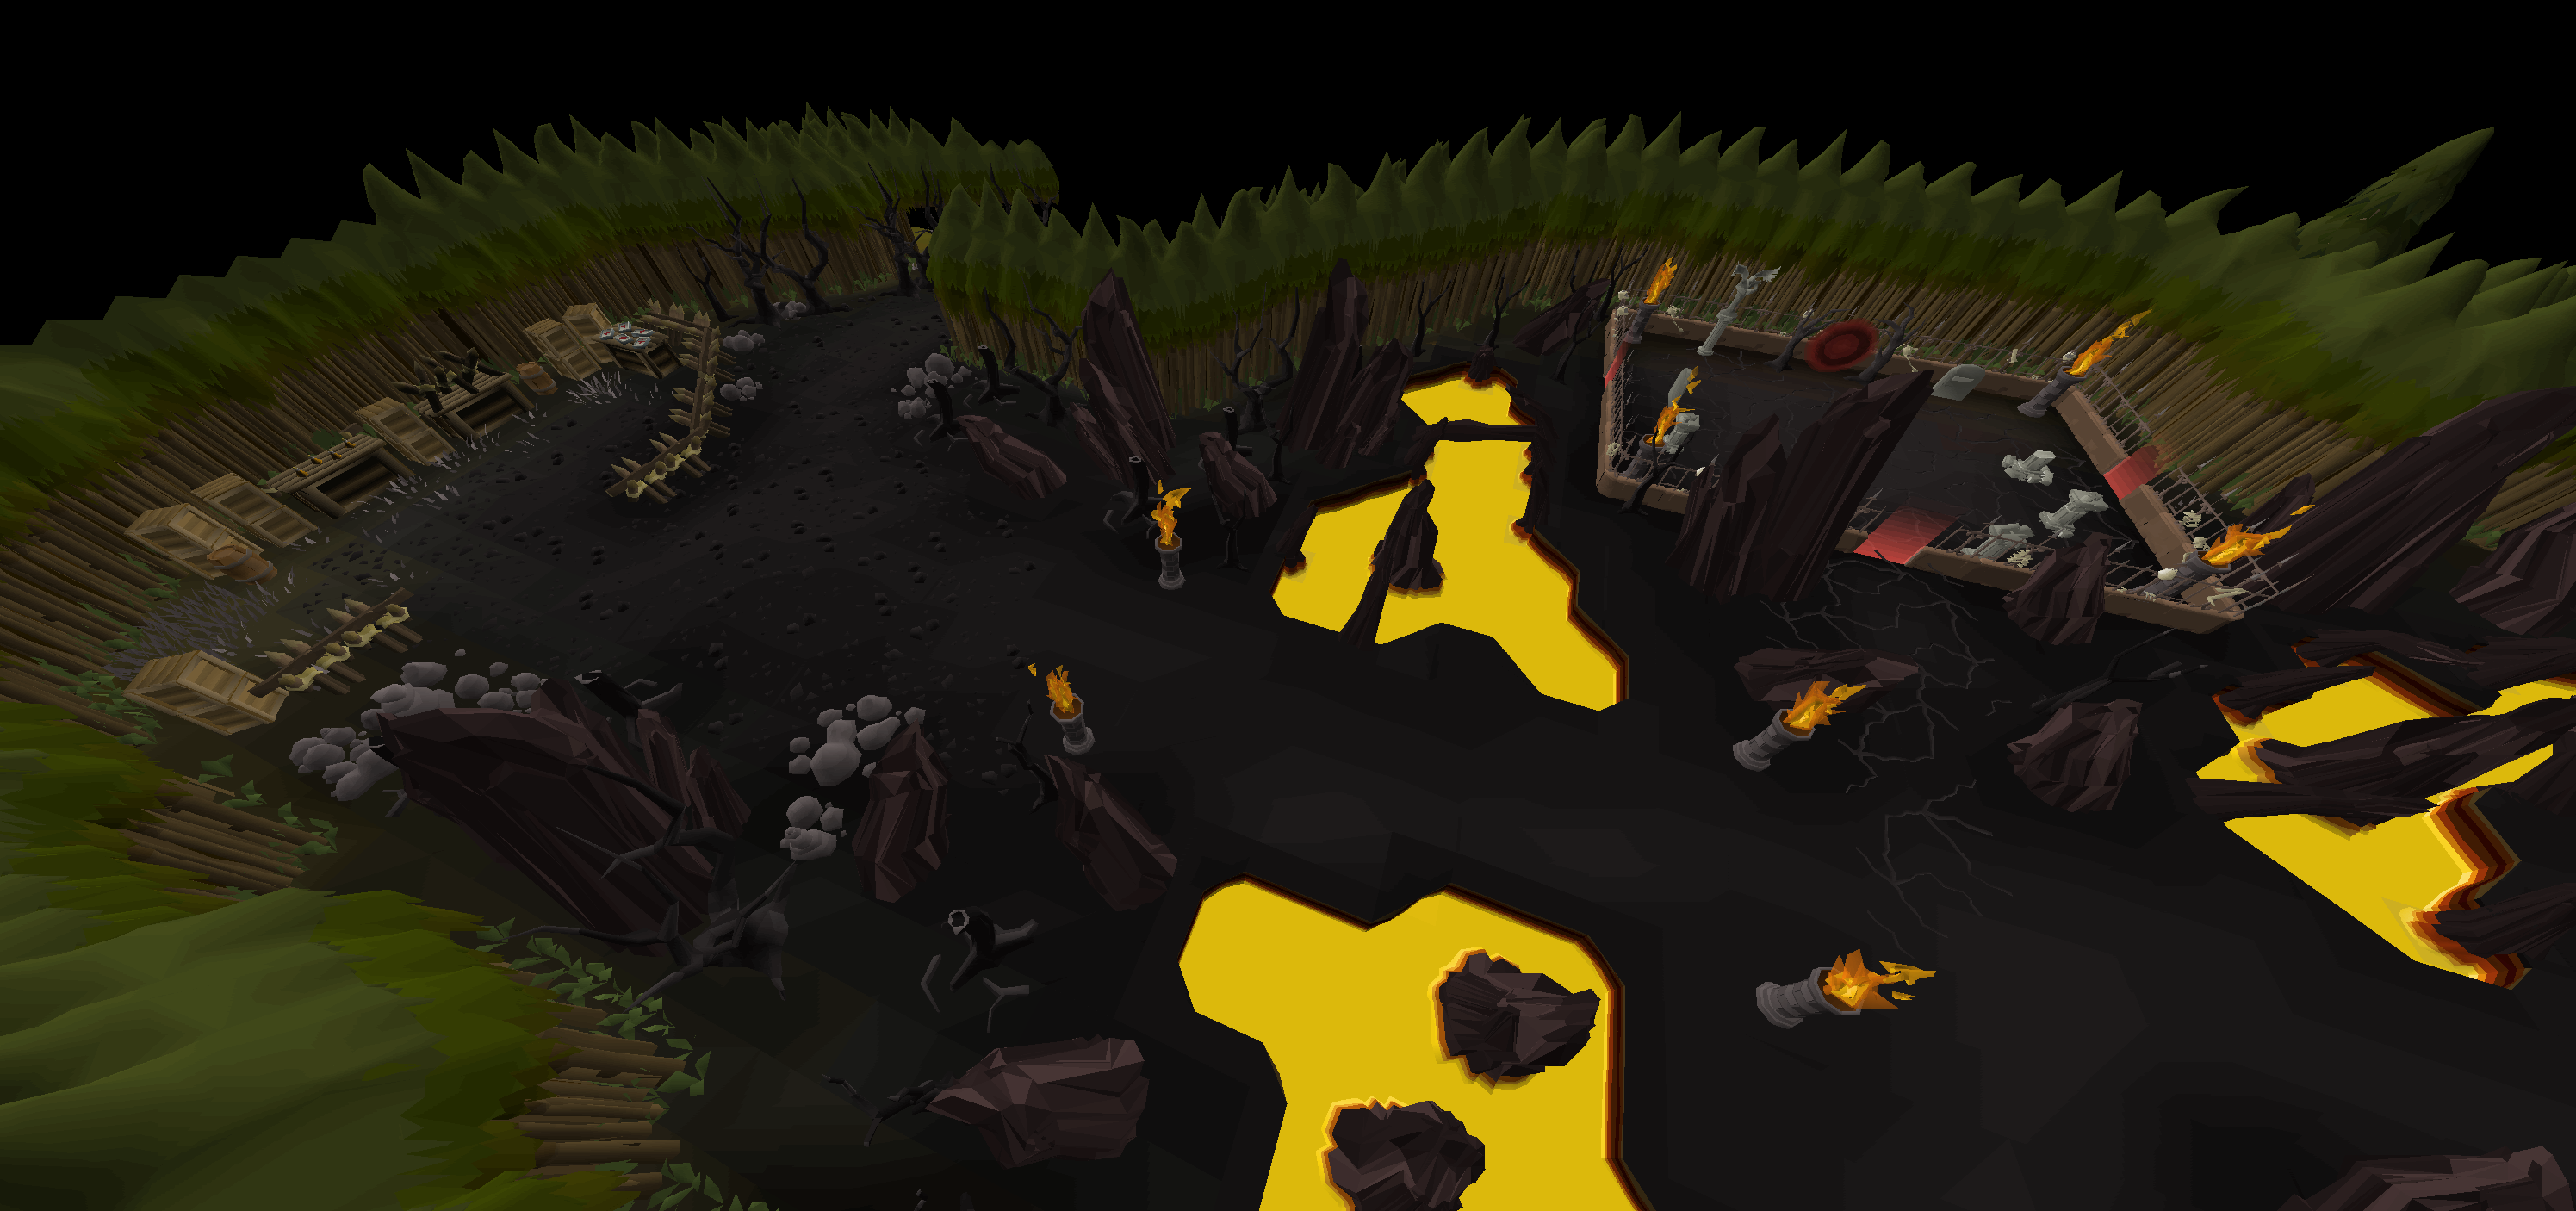 sw_minigame_area_red.png